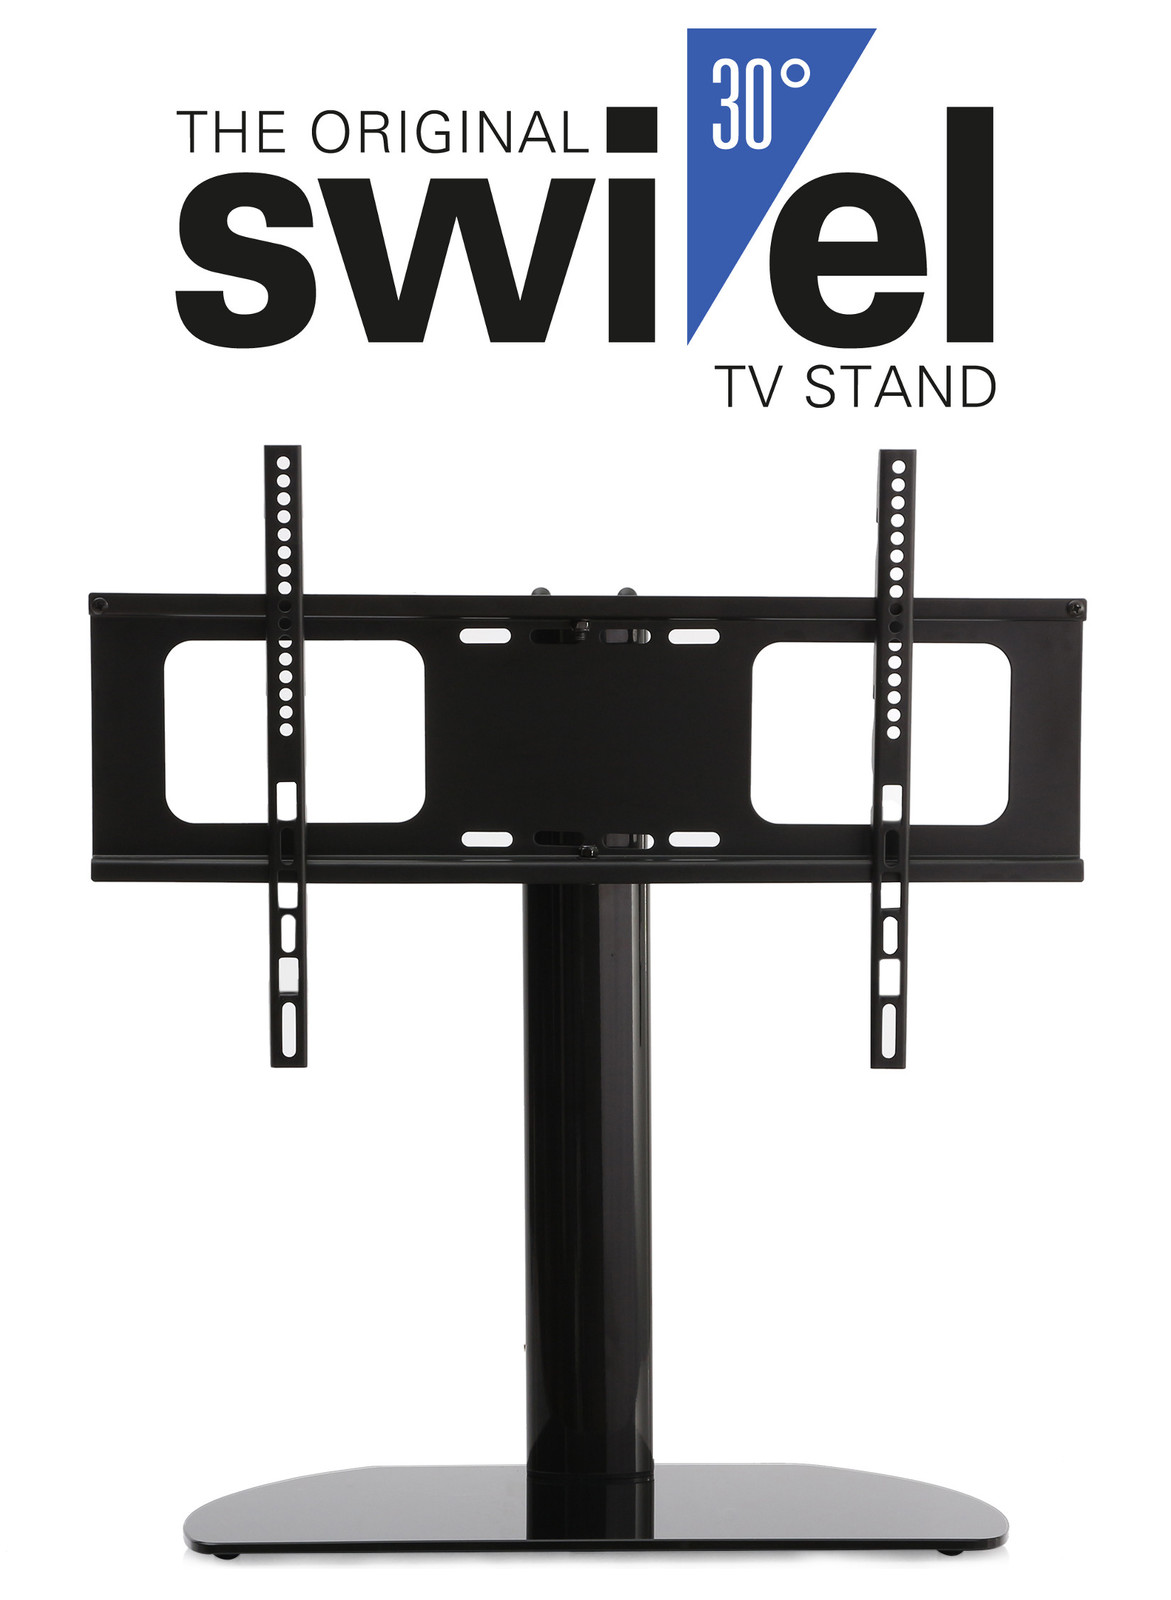 New Replacement Swivel TV Stand/Base for Vizio VU42LFHDTV10A